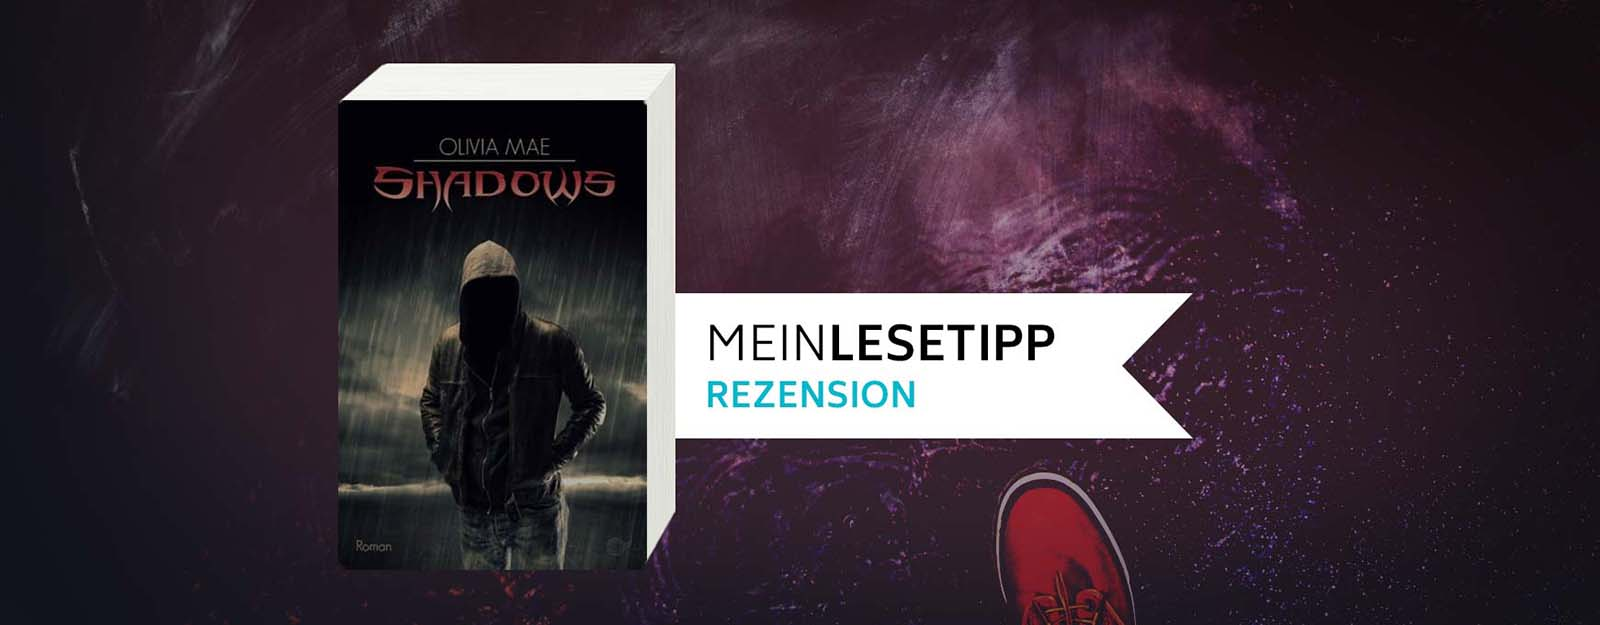 Rezension: Shadows von Olivia Mae